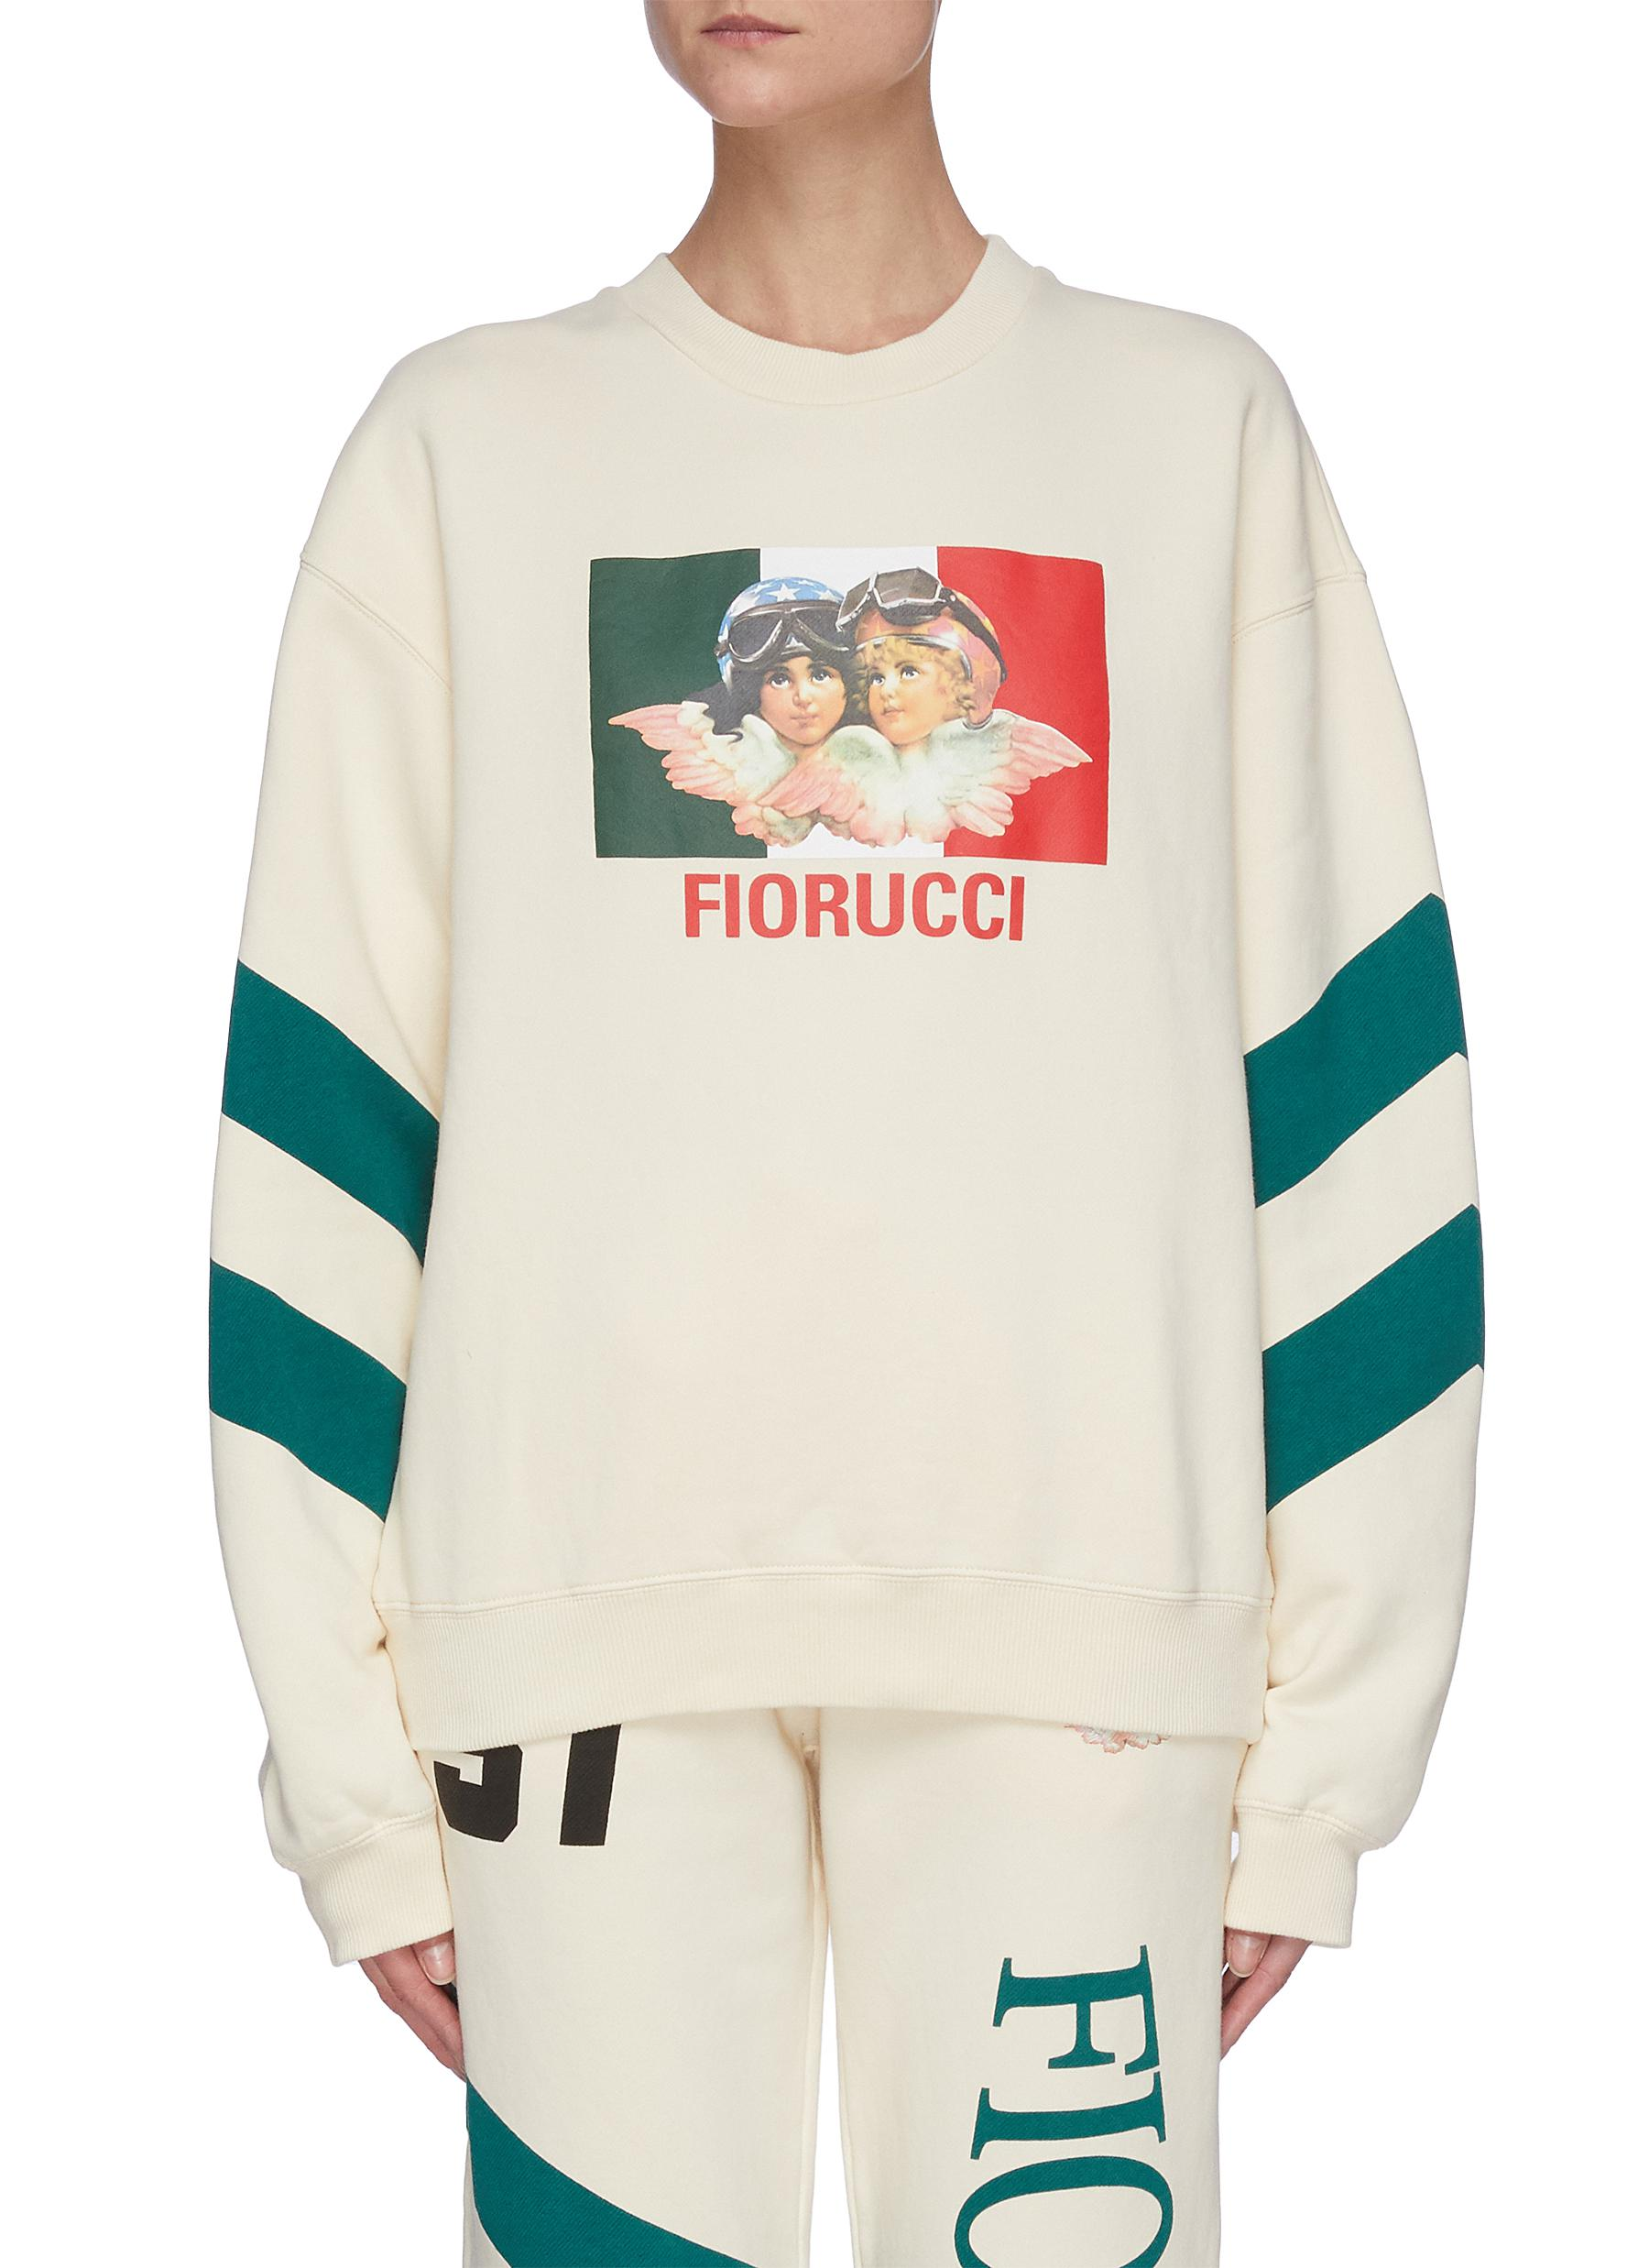 Fiorucci 'SPEED QUEEN' ANGEL GRAPHIC PRINT DIAGONAL STRIPE SWEATSHIRT